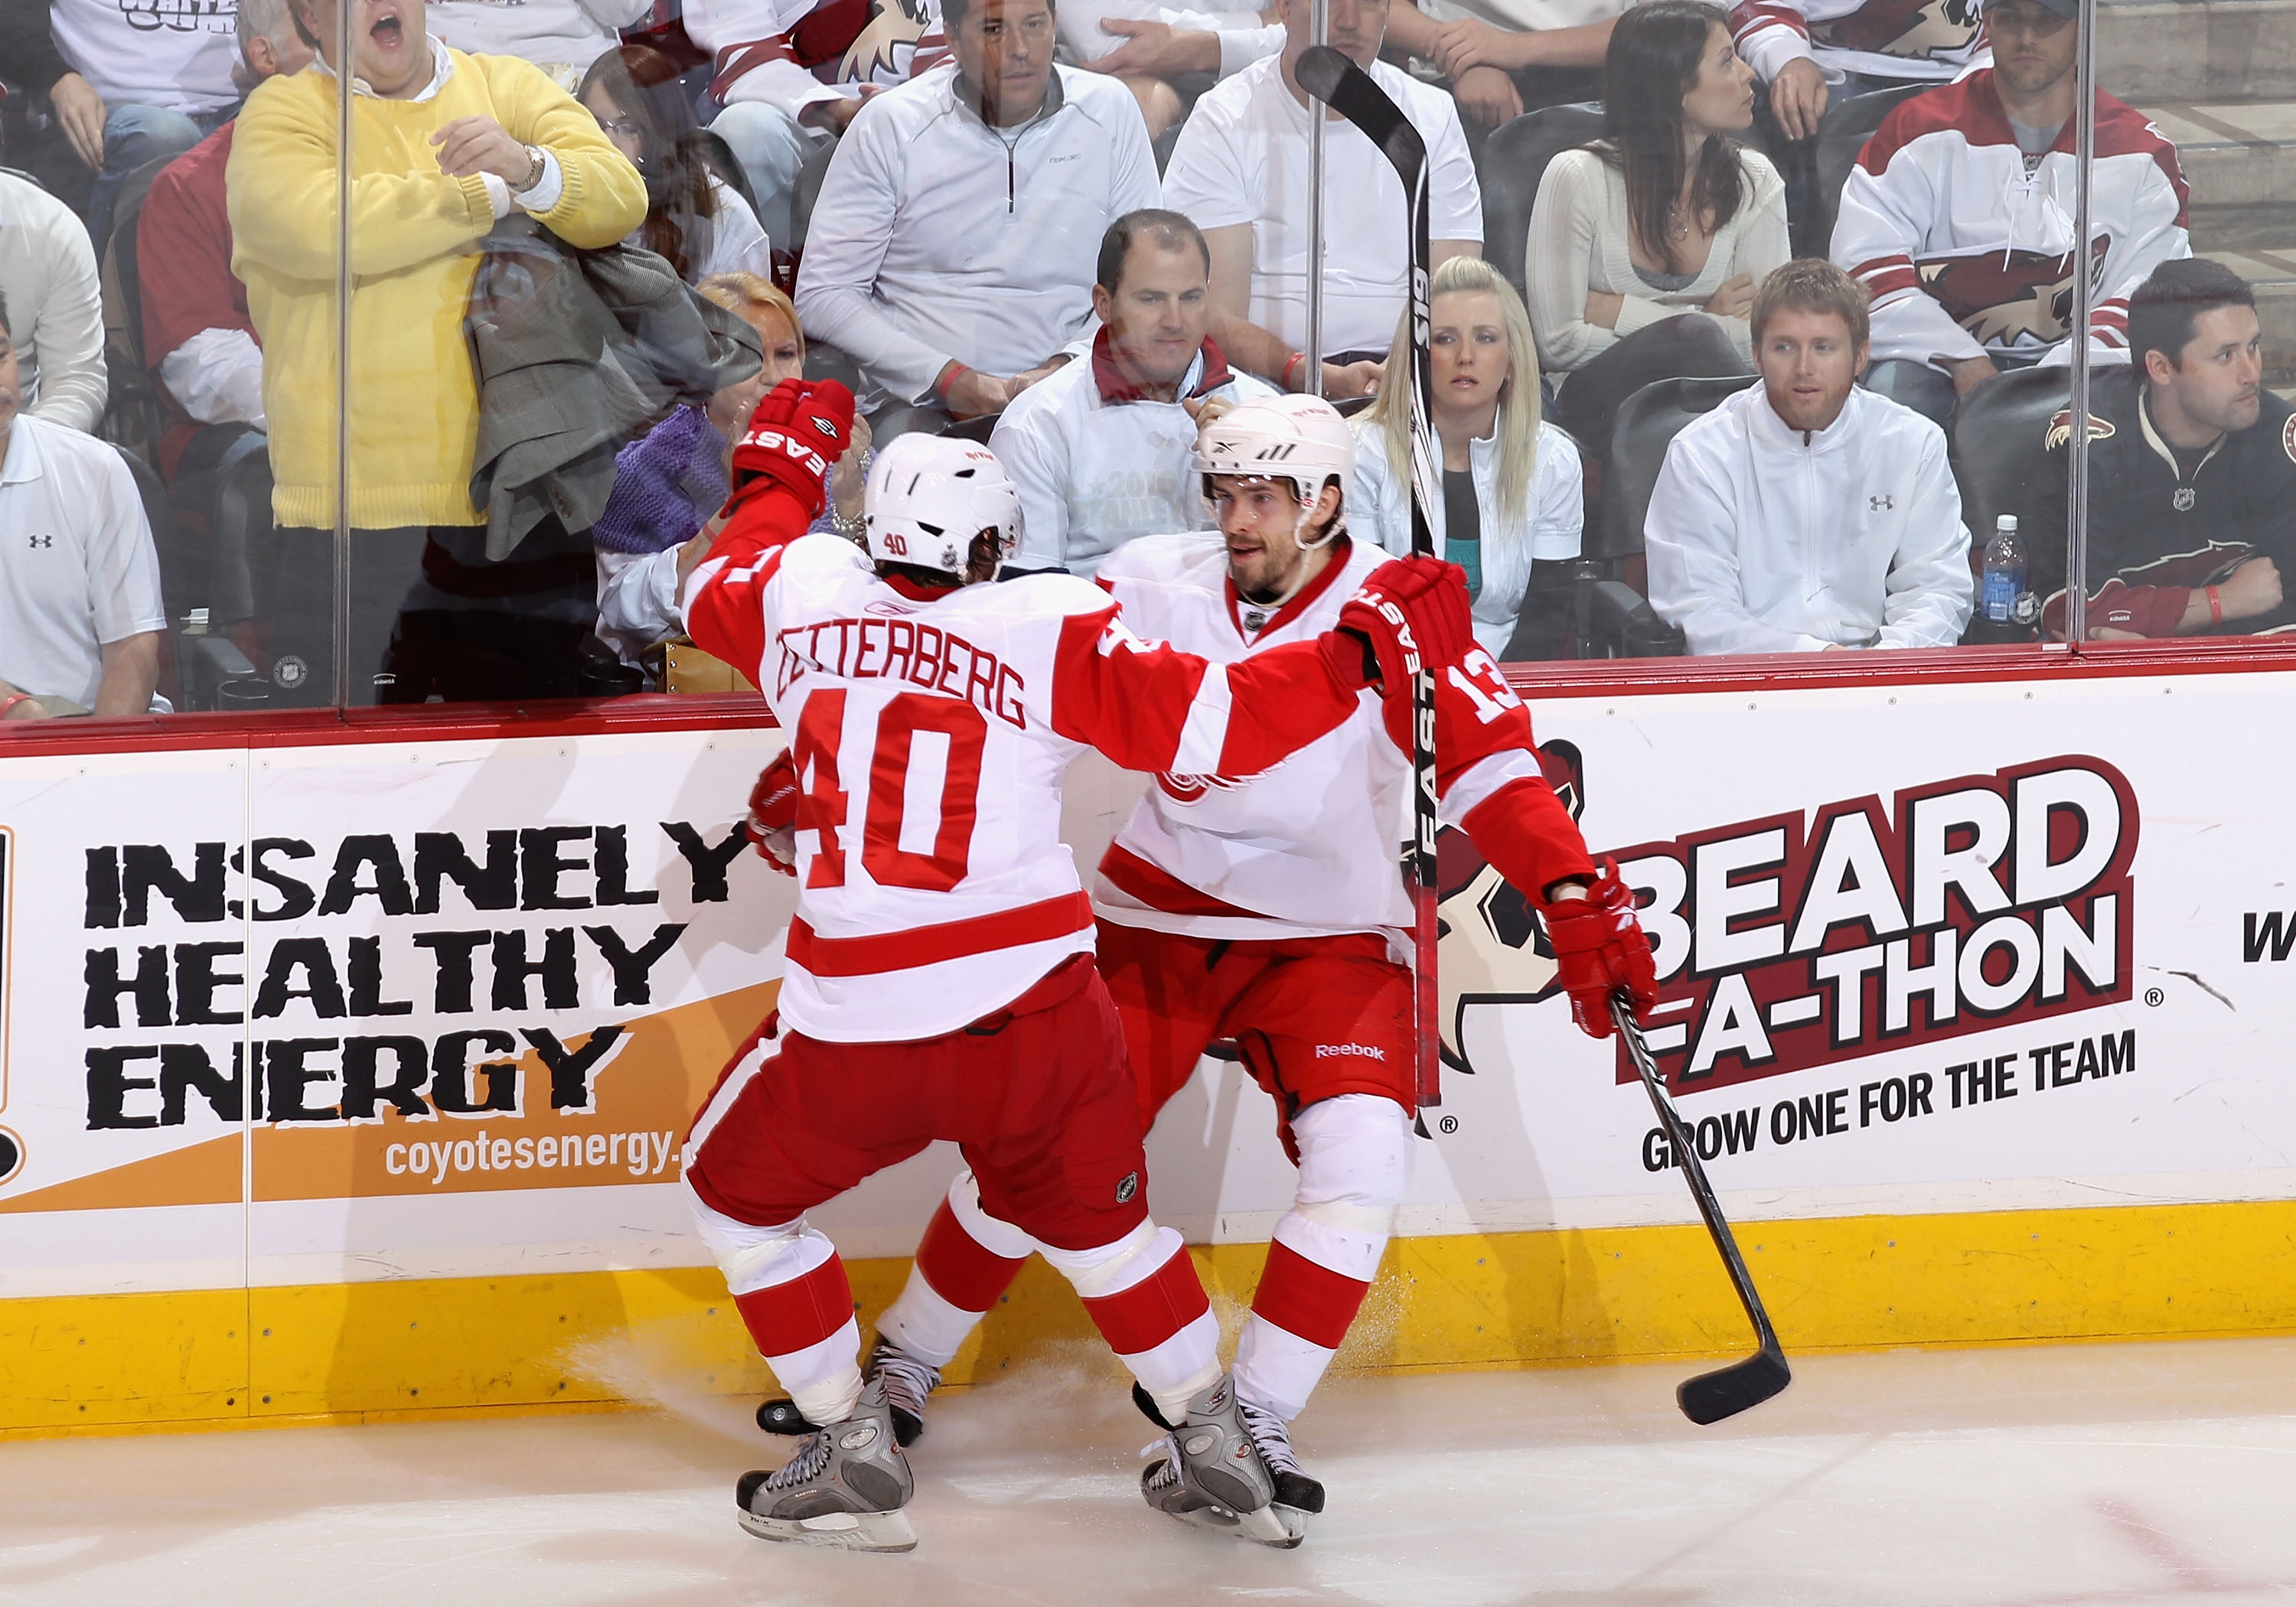 GLENDALE, AZ - APRIL 27:  Pavel Datsyuk #13 of the Detroit Red Wings celebrates with teammate Henrik Zetterberg #40 after Datsyuk scored a second period goal against the Phoenix Coyotes in Game Seven of the Western Conference Quarterfinals during the 2010